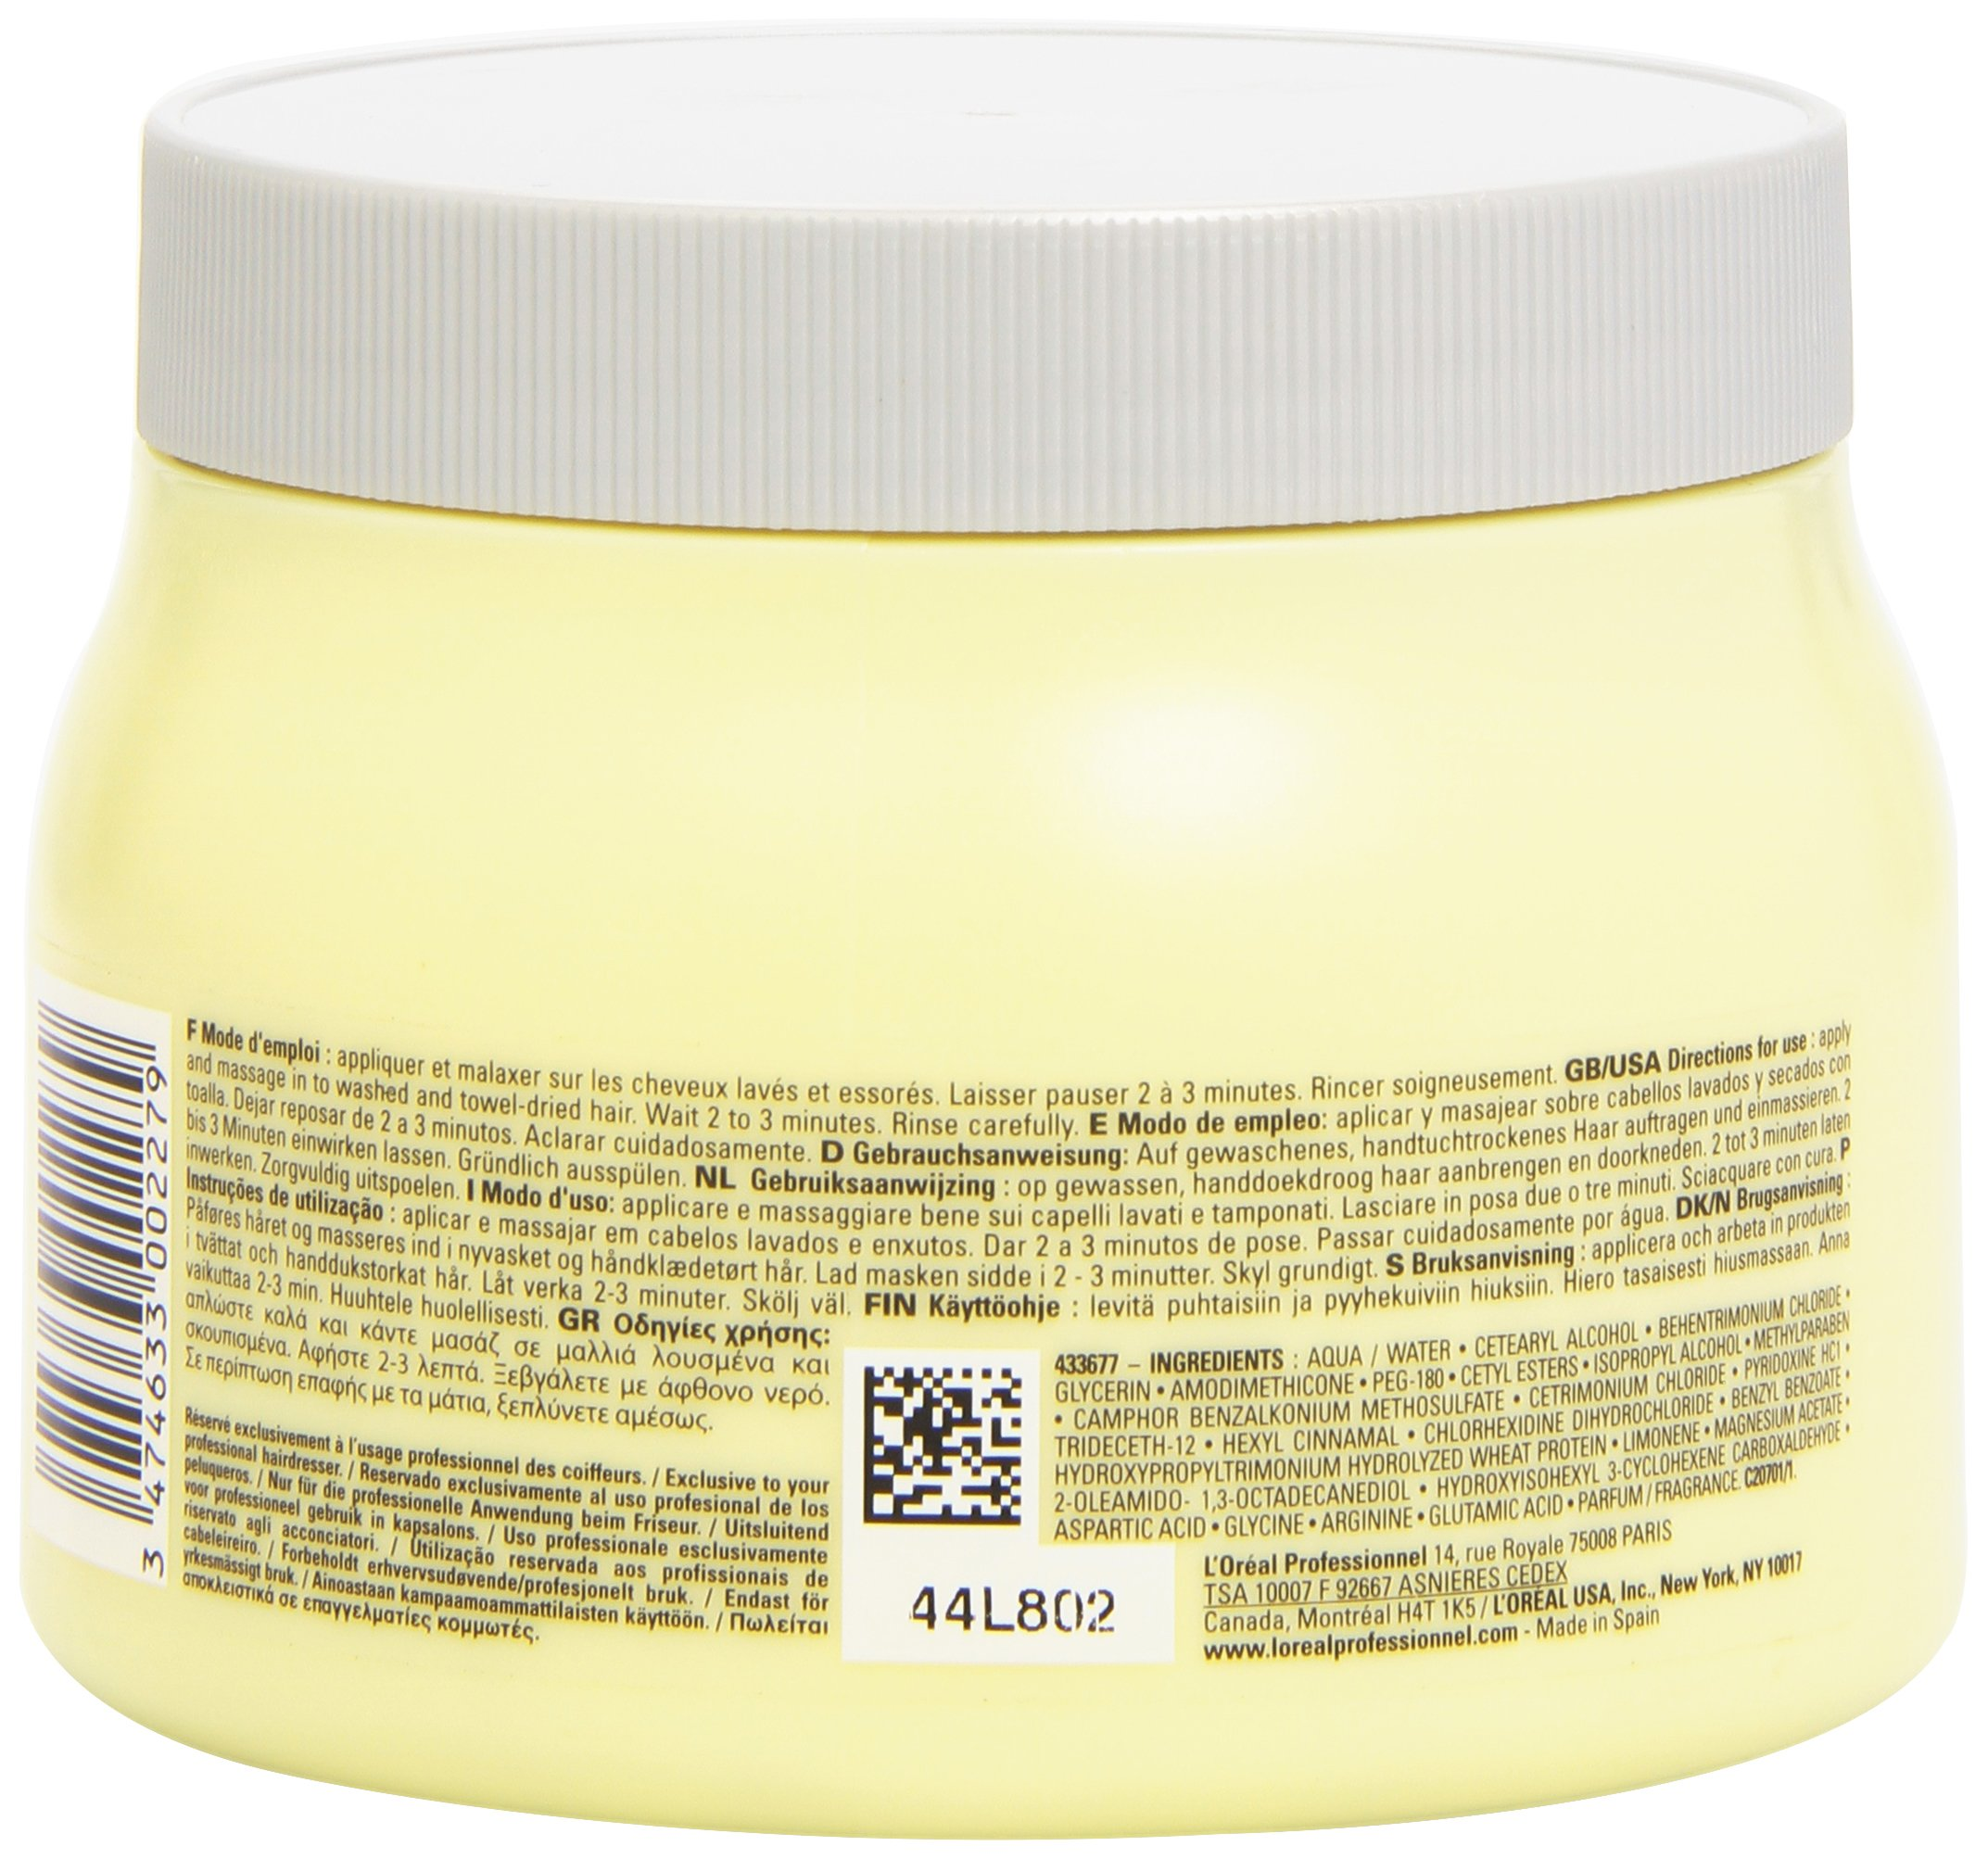 L'oreal Intense Repair Masque for Unisex, 16.9 Ounce by L'Oreal Paris (Image #3)